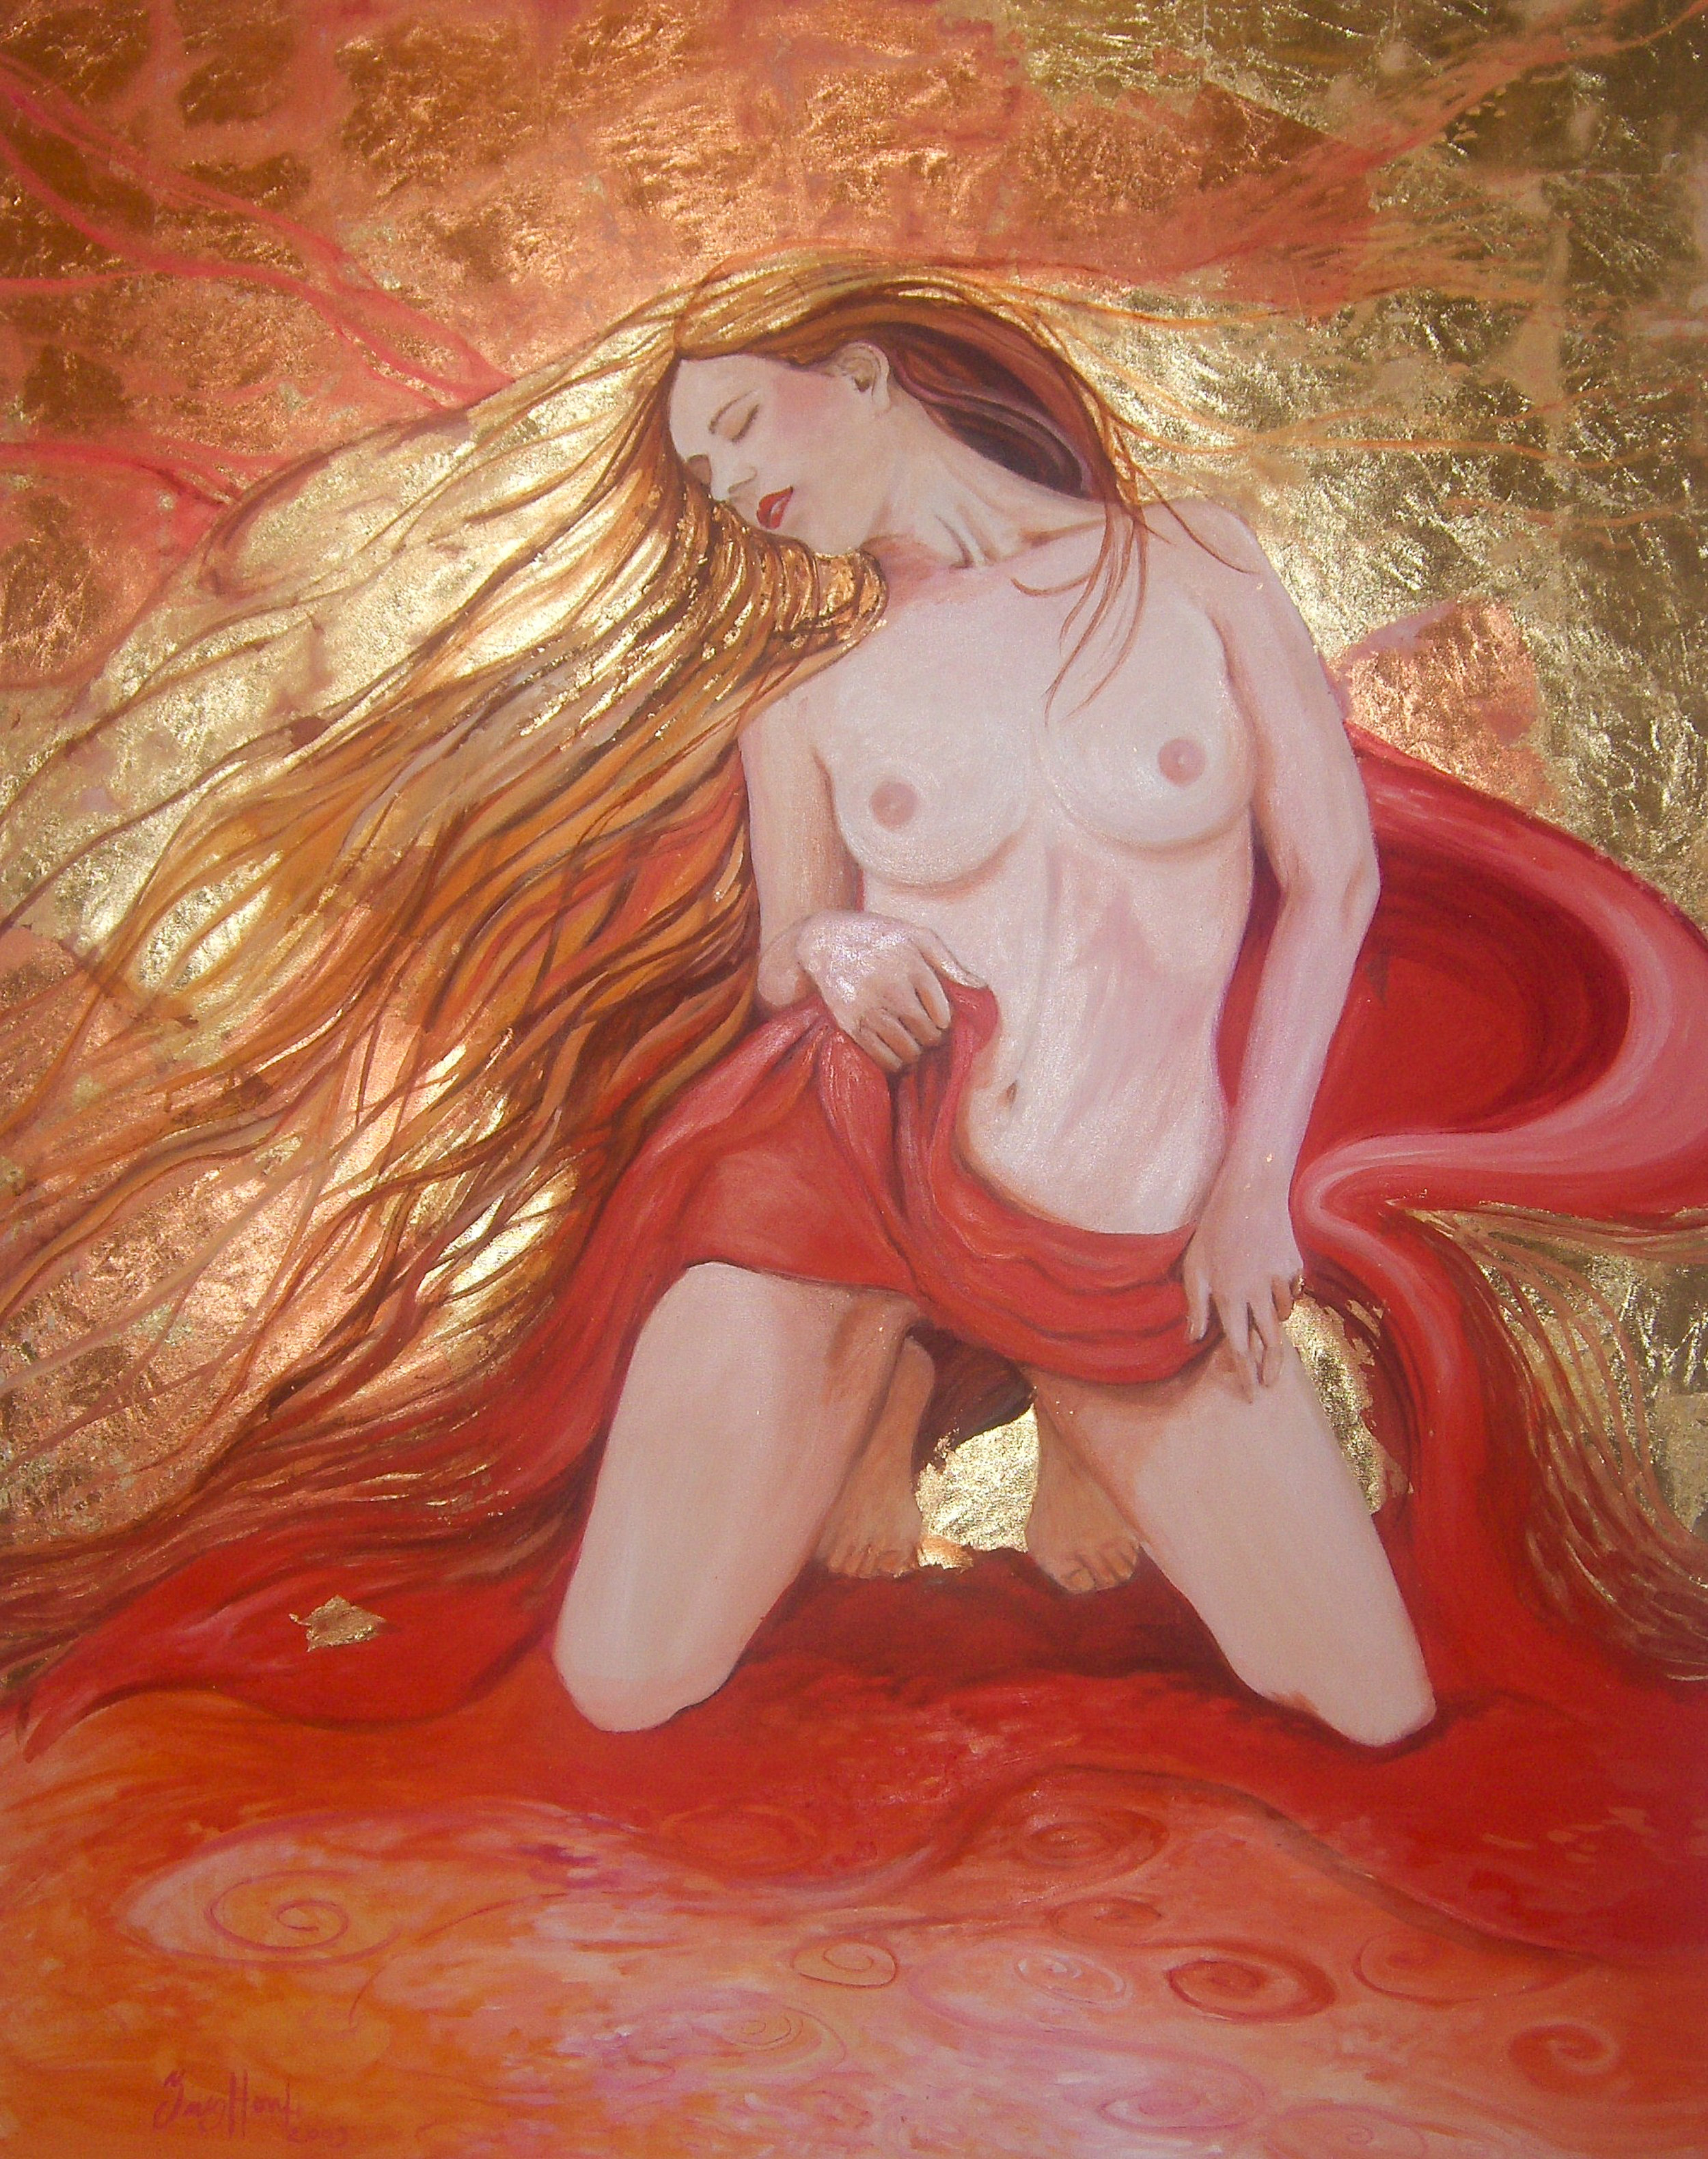 Passion III. 120x150 cm oil on canvas by Ines Honfi.jpg